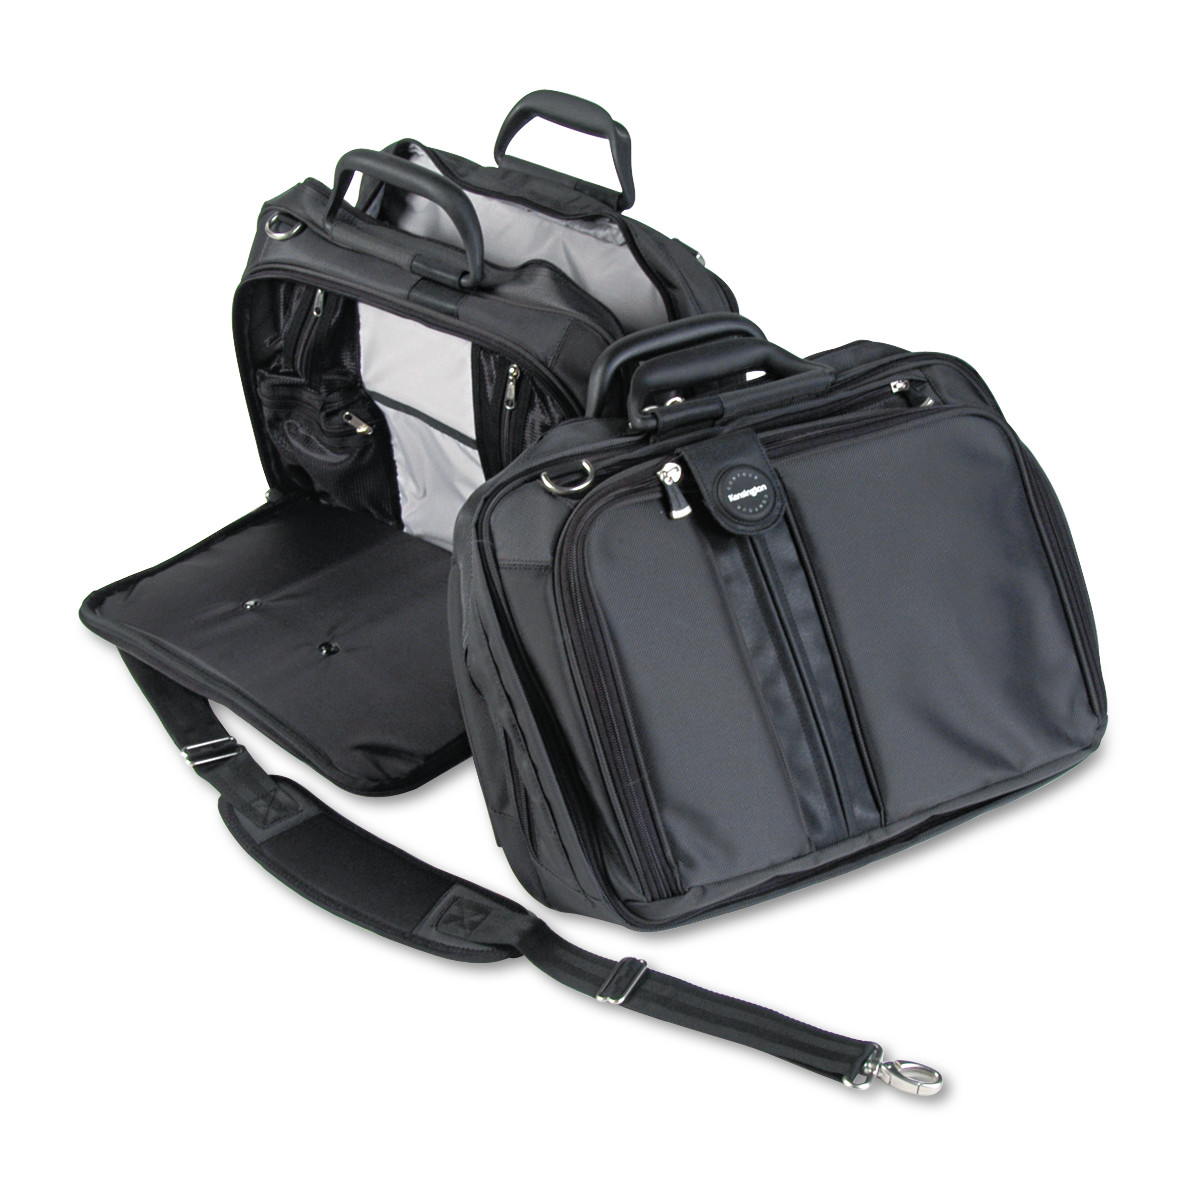 "Kensington Contour 15.6"" Laptop Carrying Case, Nylon, 16-1/2 x 6-1/2 x 12-1/2, Black"